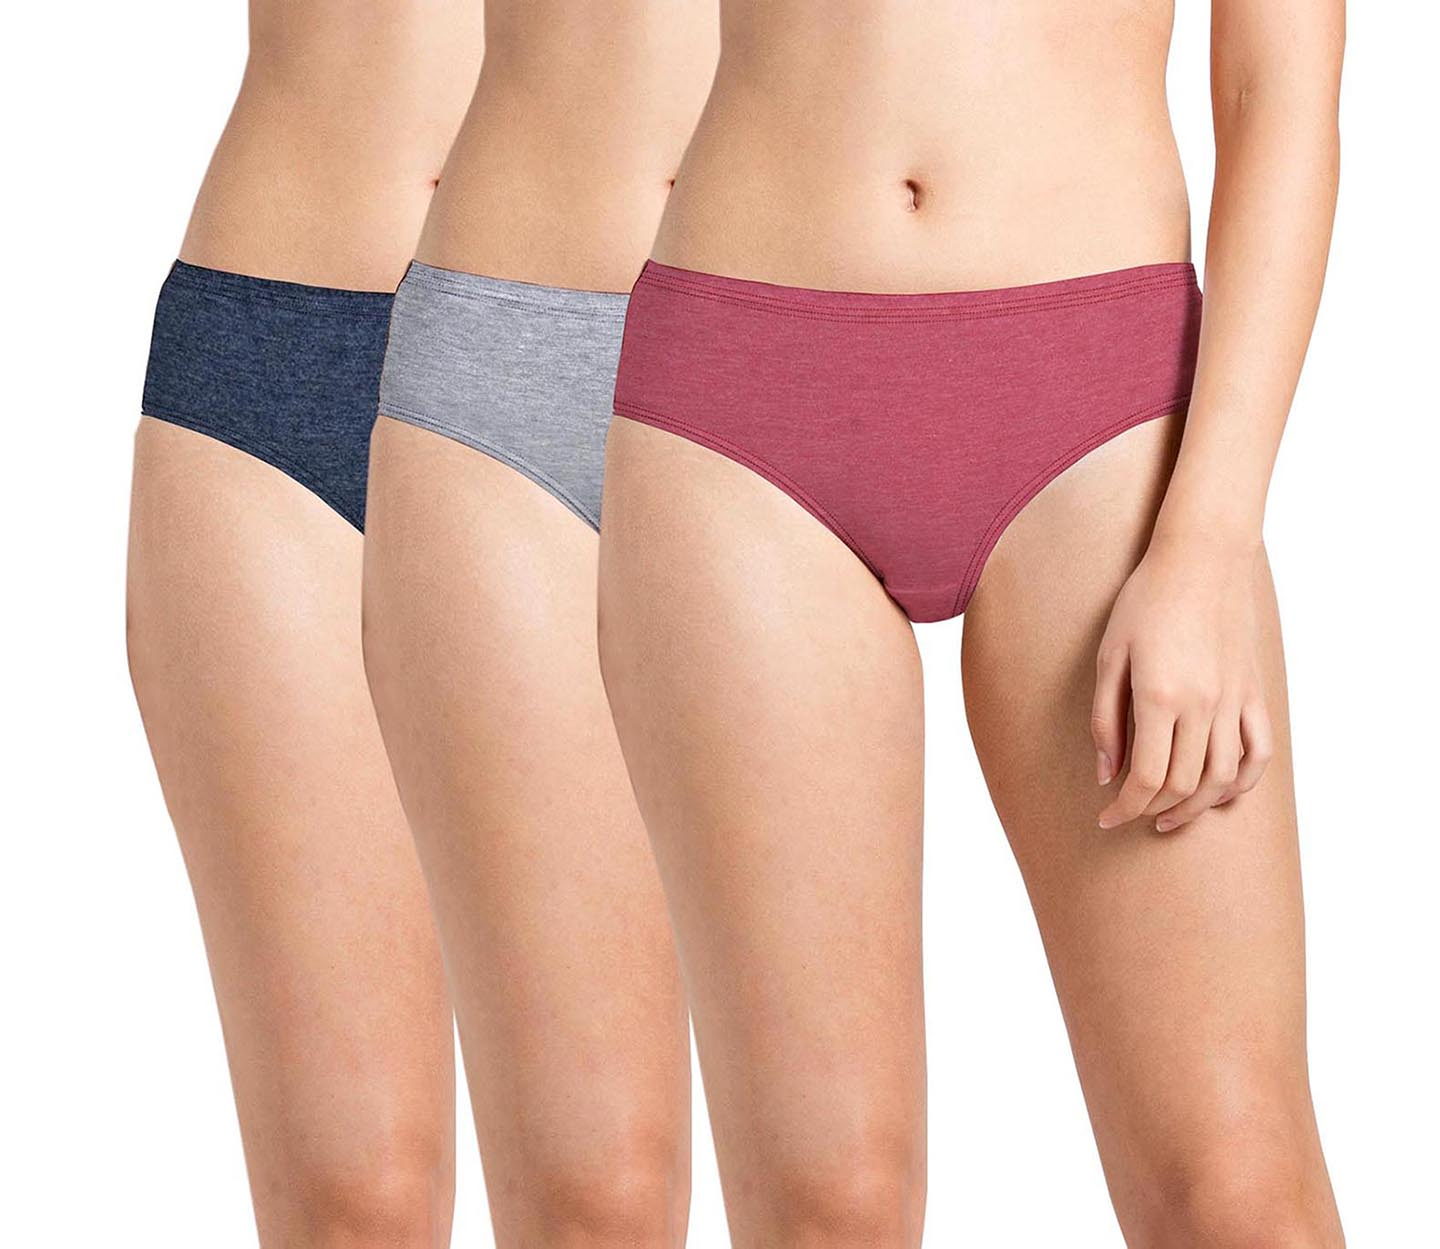 Plain Inner Elastic Panty Pack of 3 -KS003-Pack 21 3XL SIZE ONLY